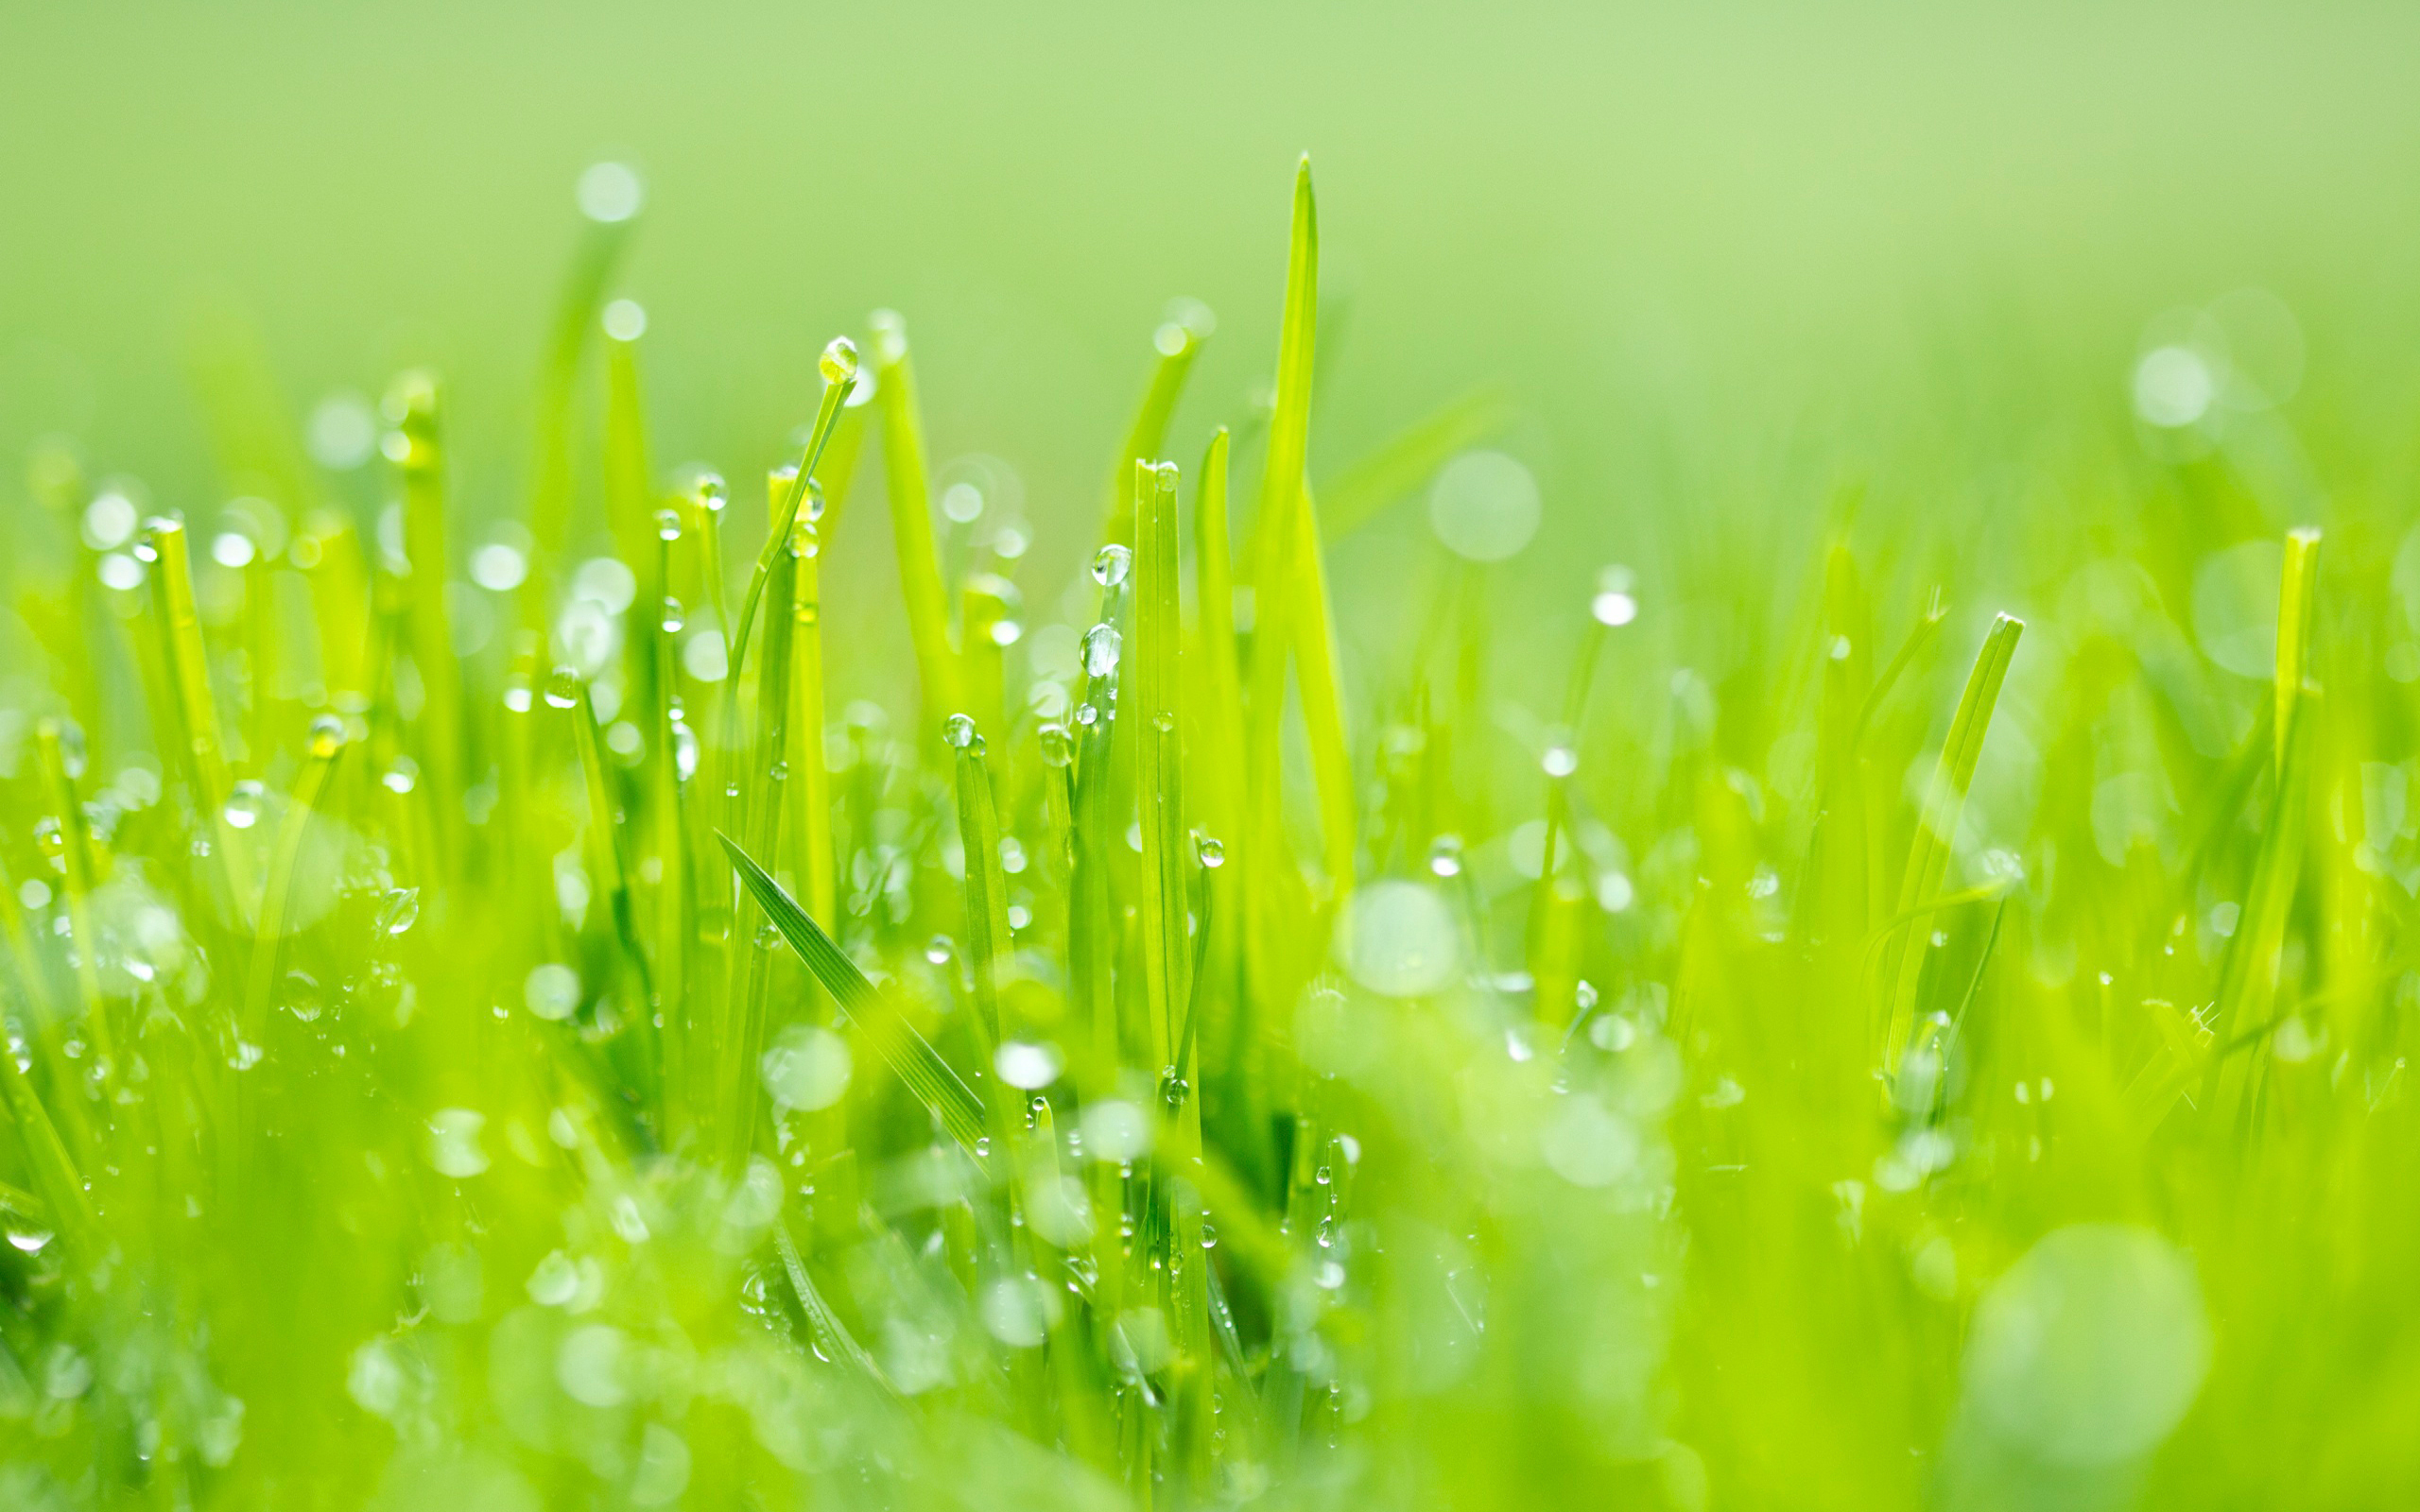 grass wallpaper green hd